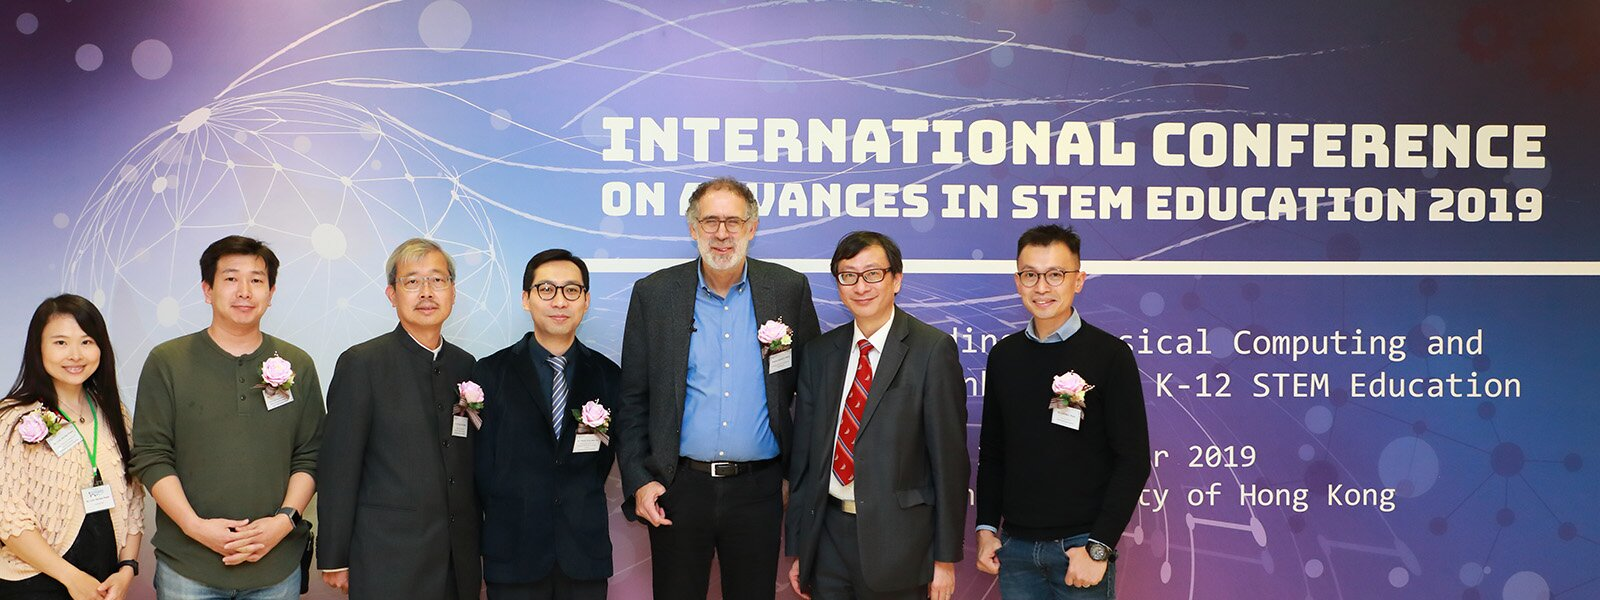 International Conference on Advances in STEM Education 2019@EdUHK